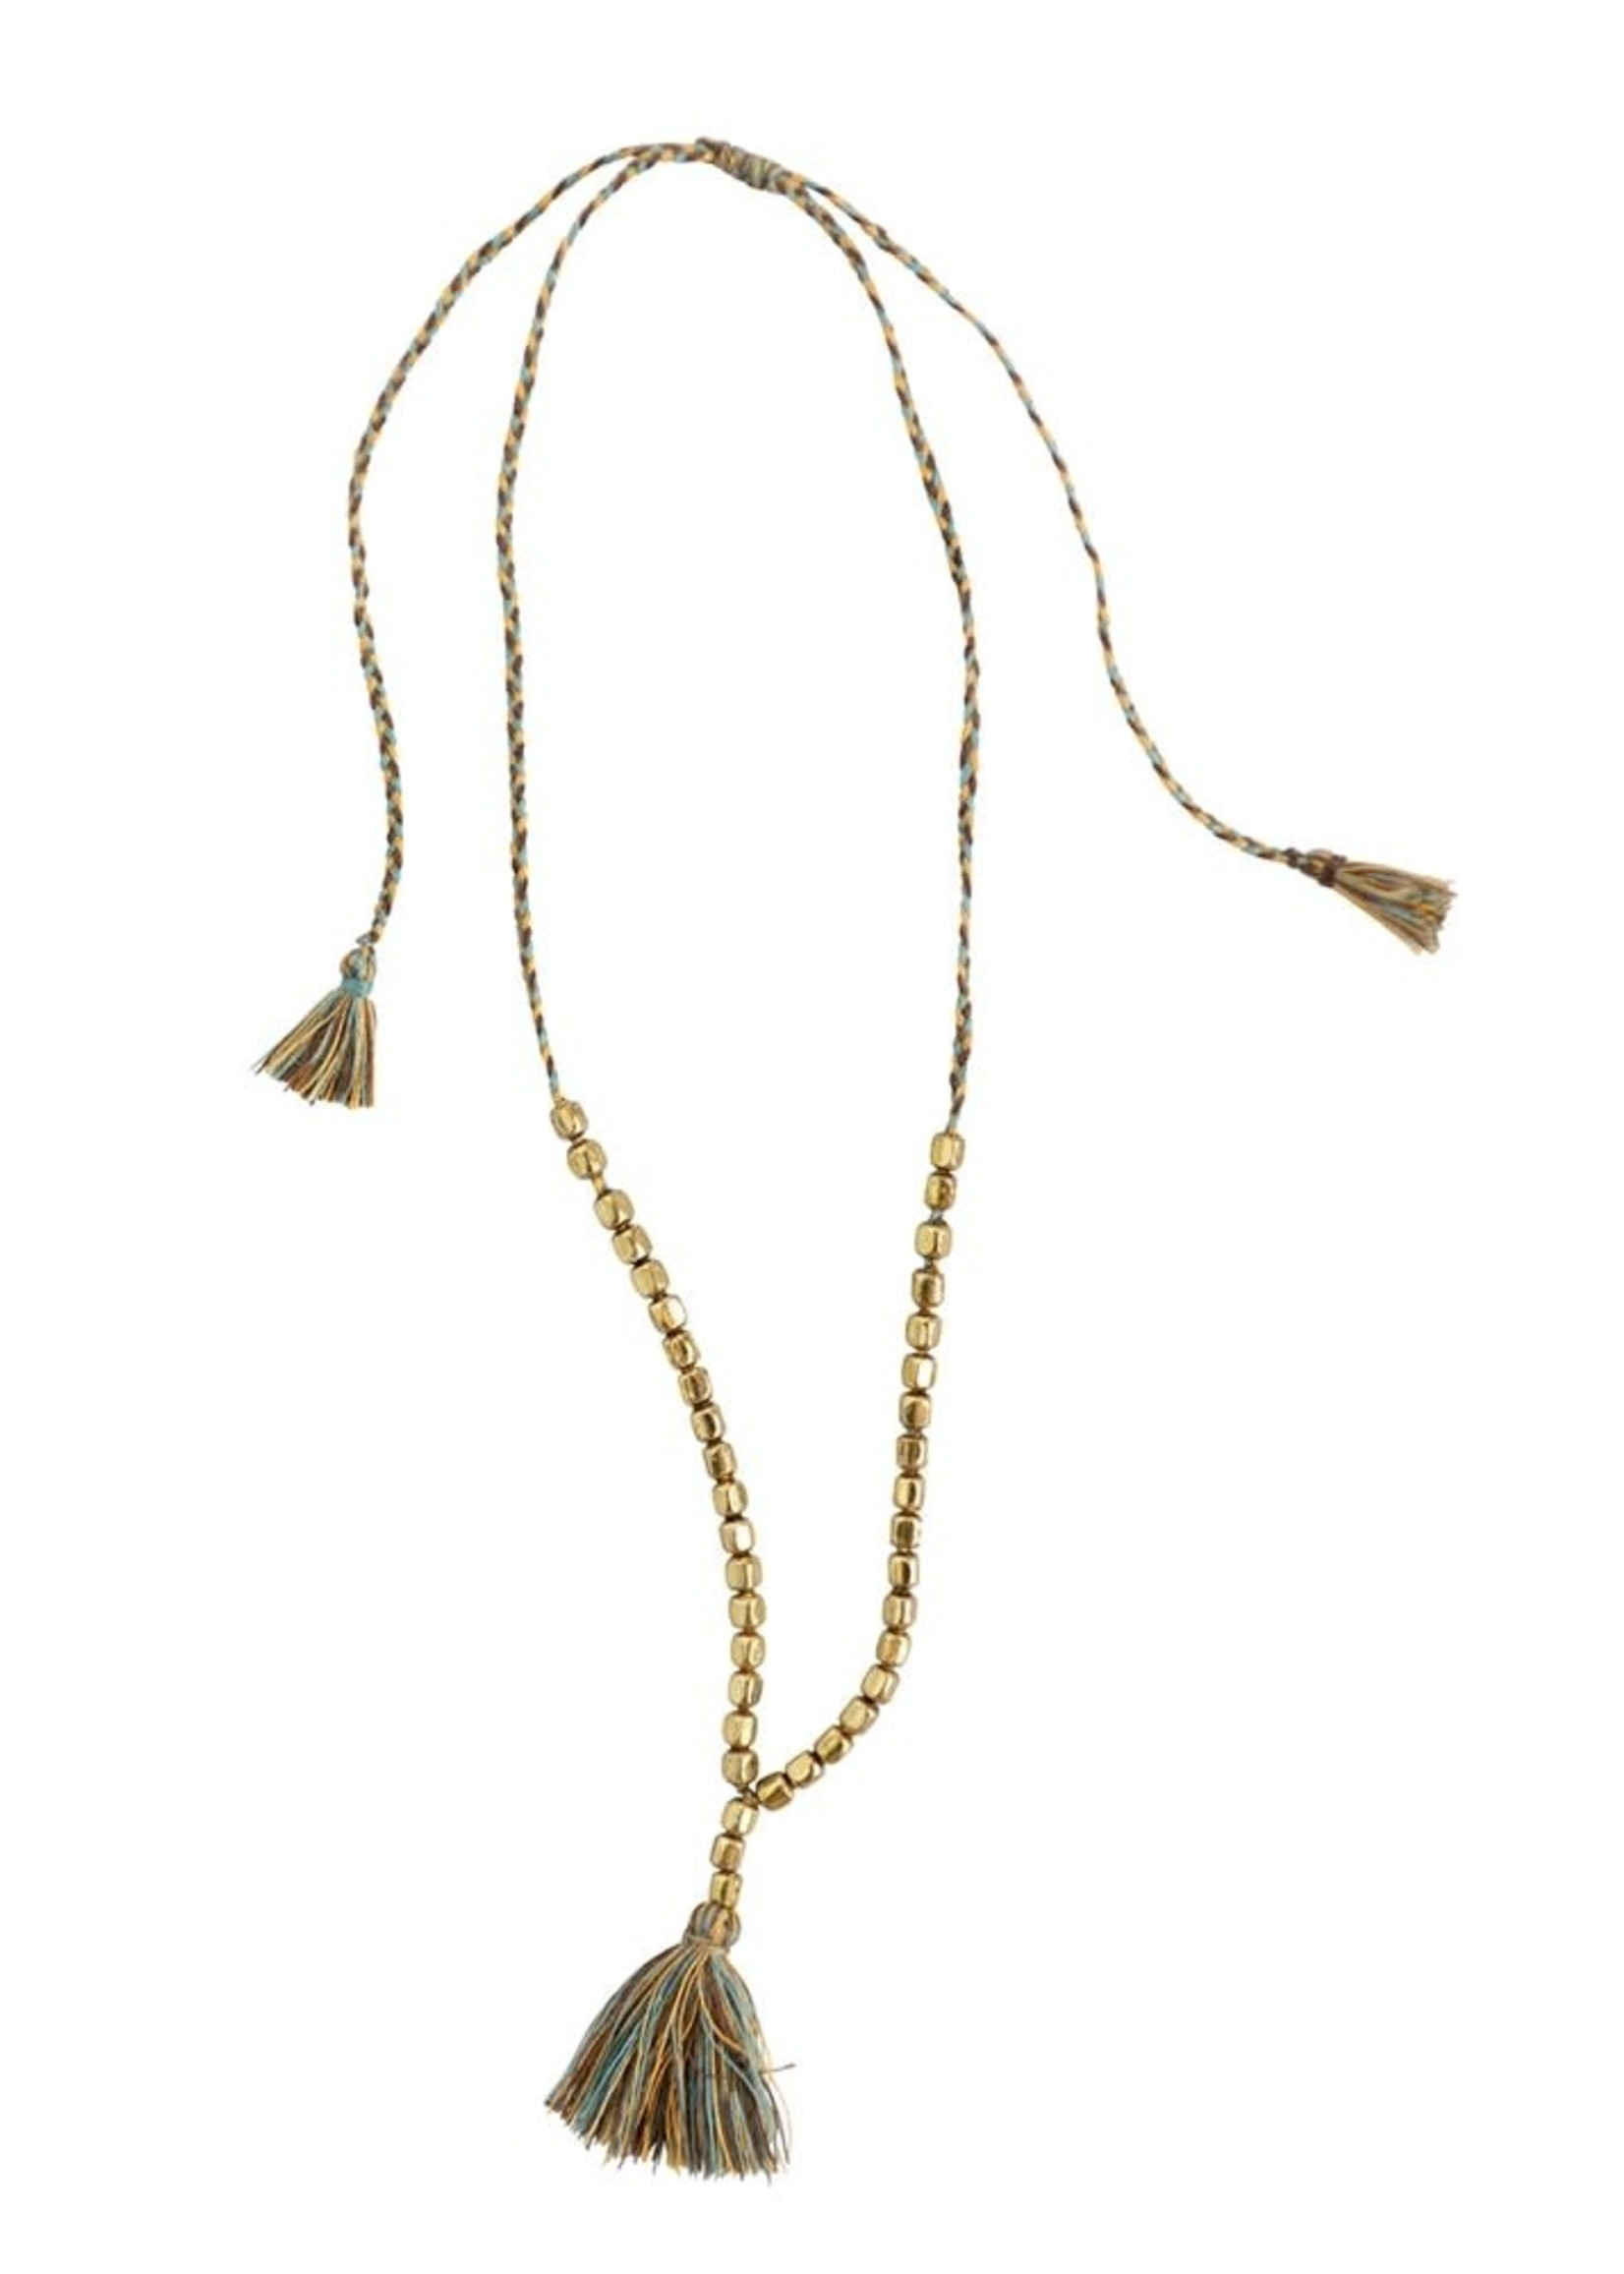 Metal Necklace w/ Brass Colored Beads and Tassel